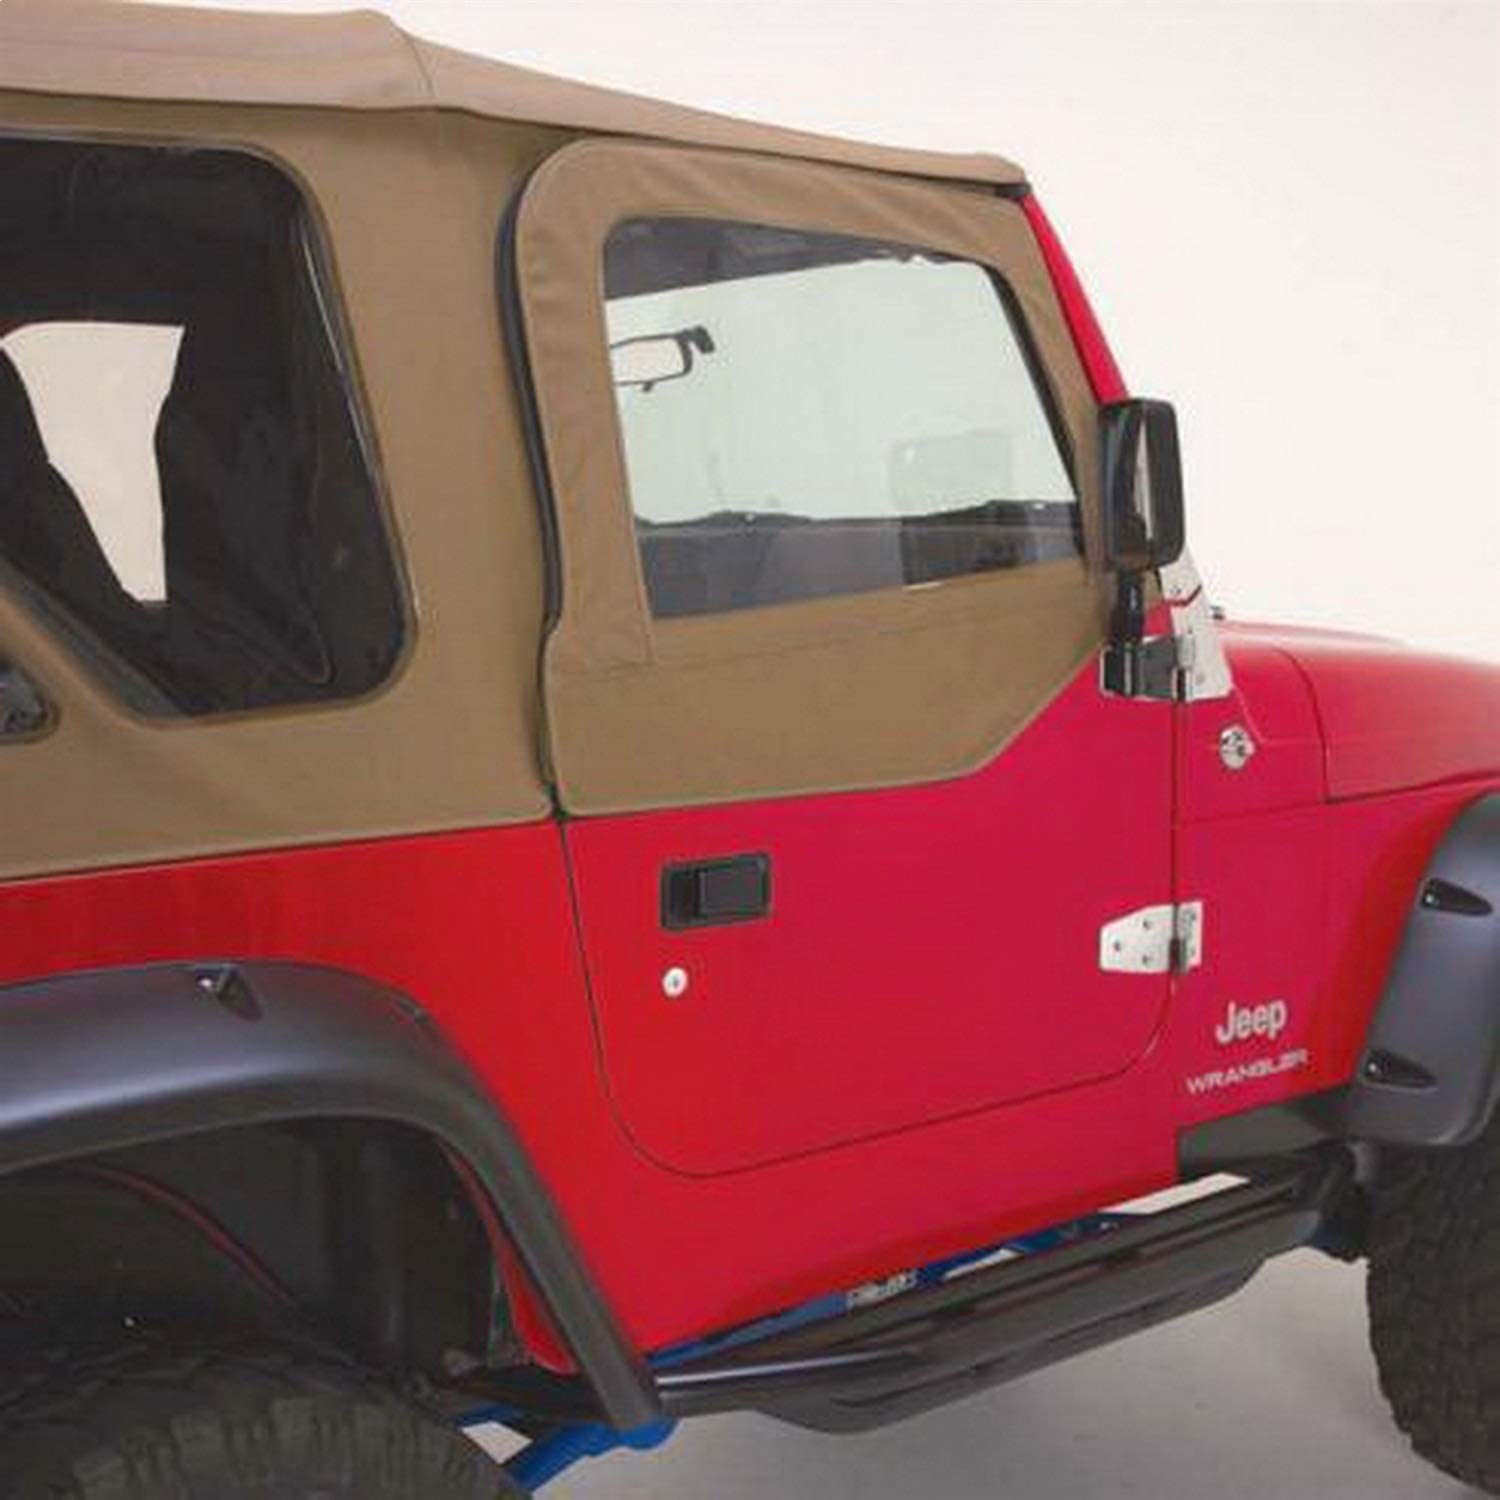 for 1987-1995 Jeep Wrangler YJ for Soft Upper Doors RAMPAGE PRODUCTS 89617 Spice Factory Replacement Door Skins